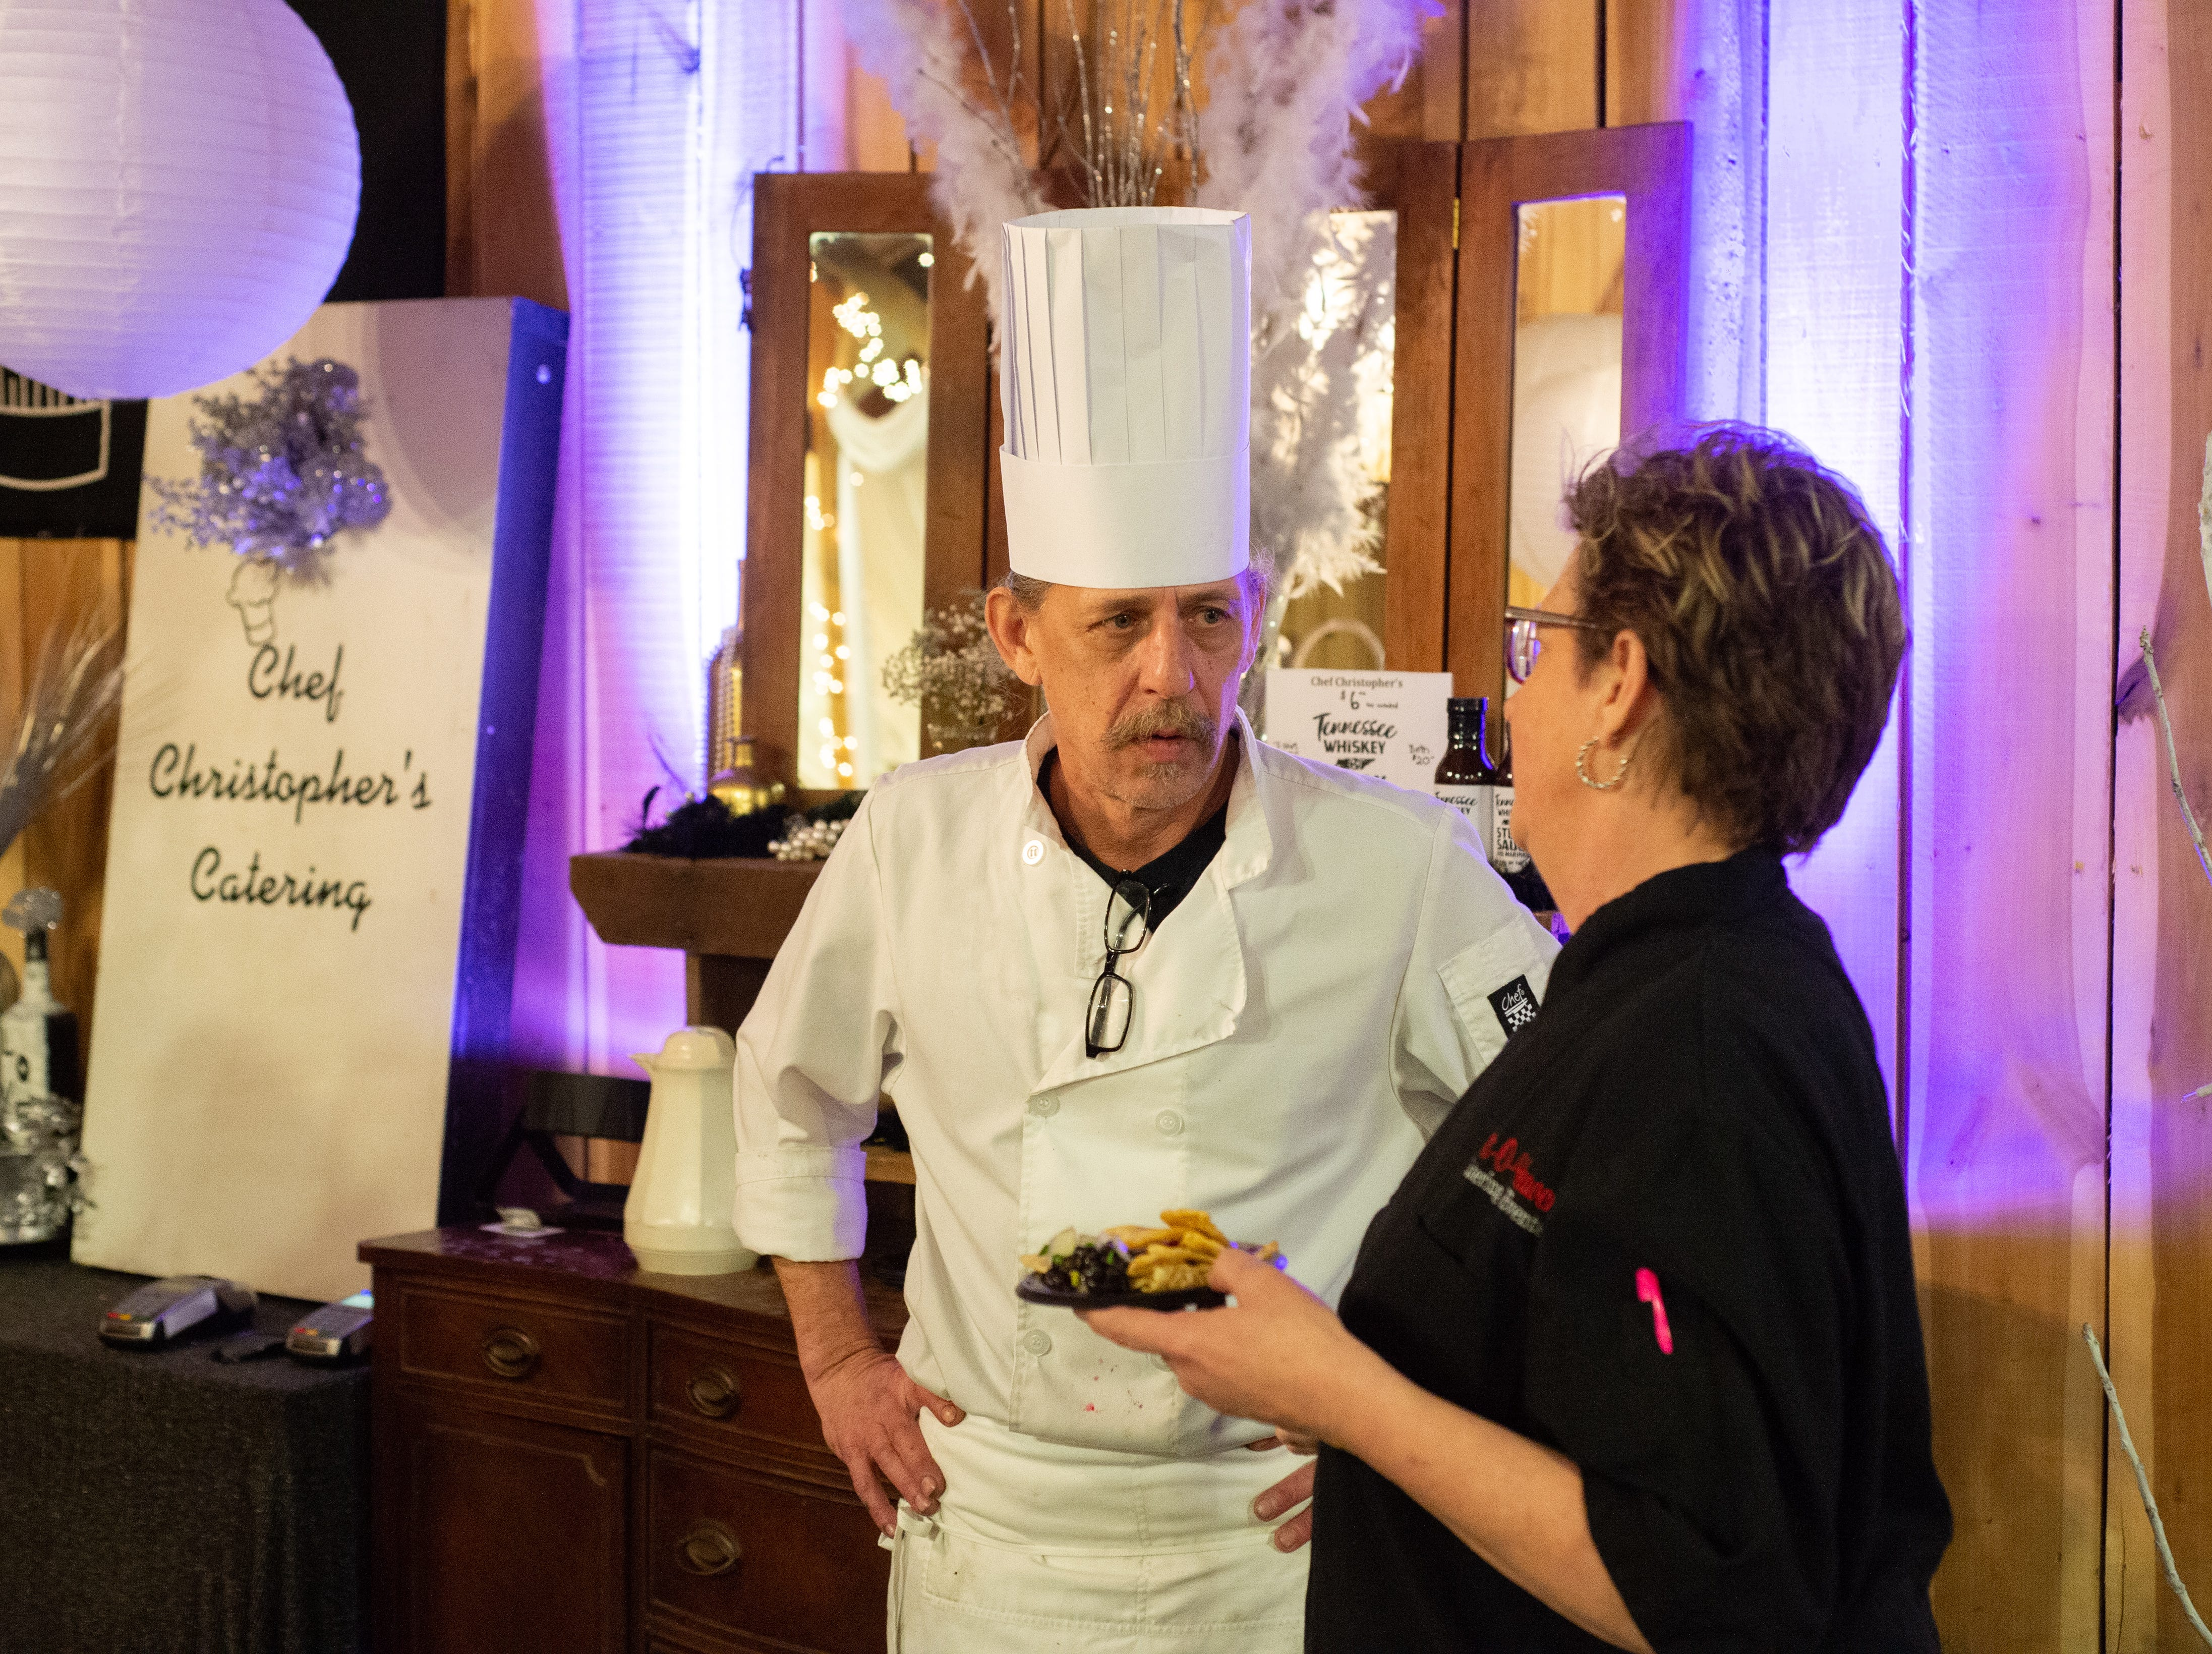 Chef Christopher's Catering brought food to sample during the Sumner County Bridal Show at Epic Event Center in Gallatin on Sunday, Jan. 27.